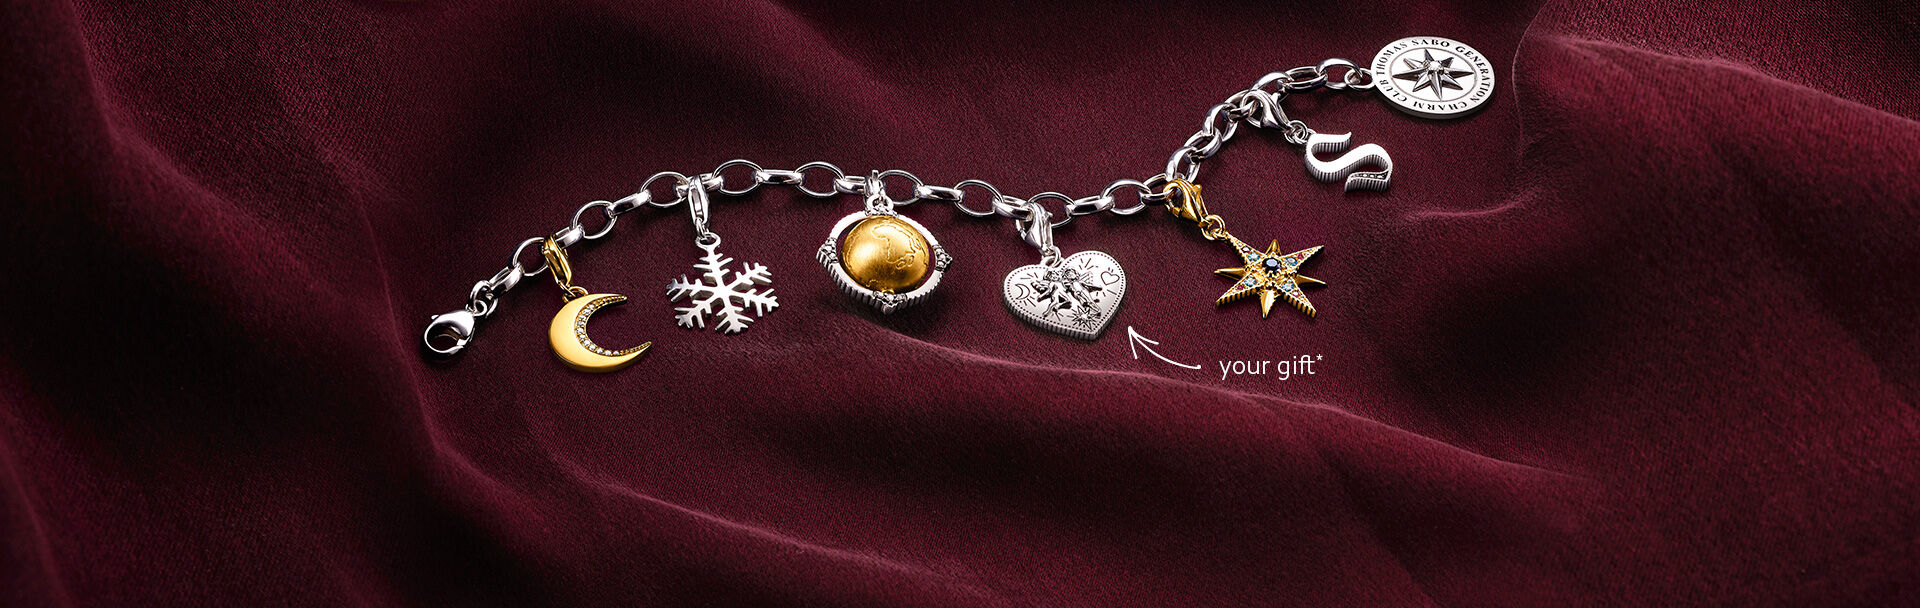 Jewellery Watches Fragrances Thomas Sabo Online Shop Tendencies Caps White Way Of Life Cap Putih Charm As A Gift